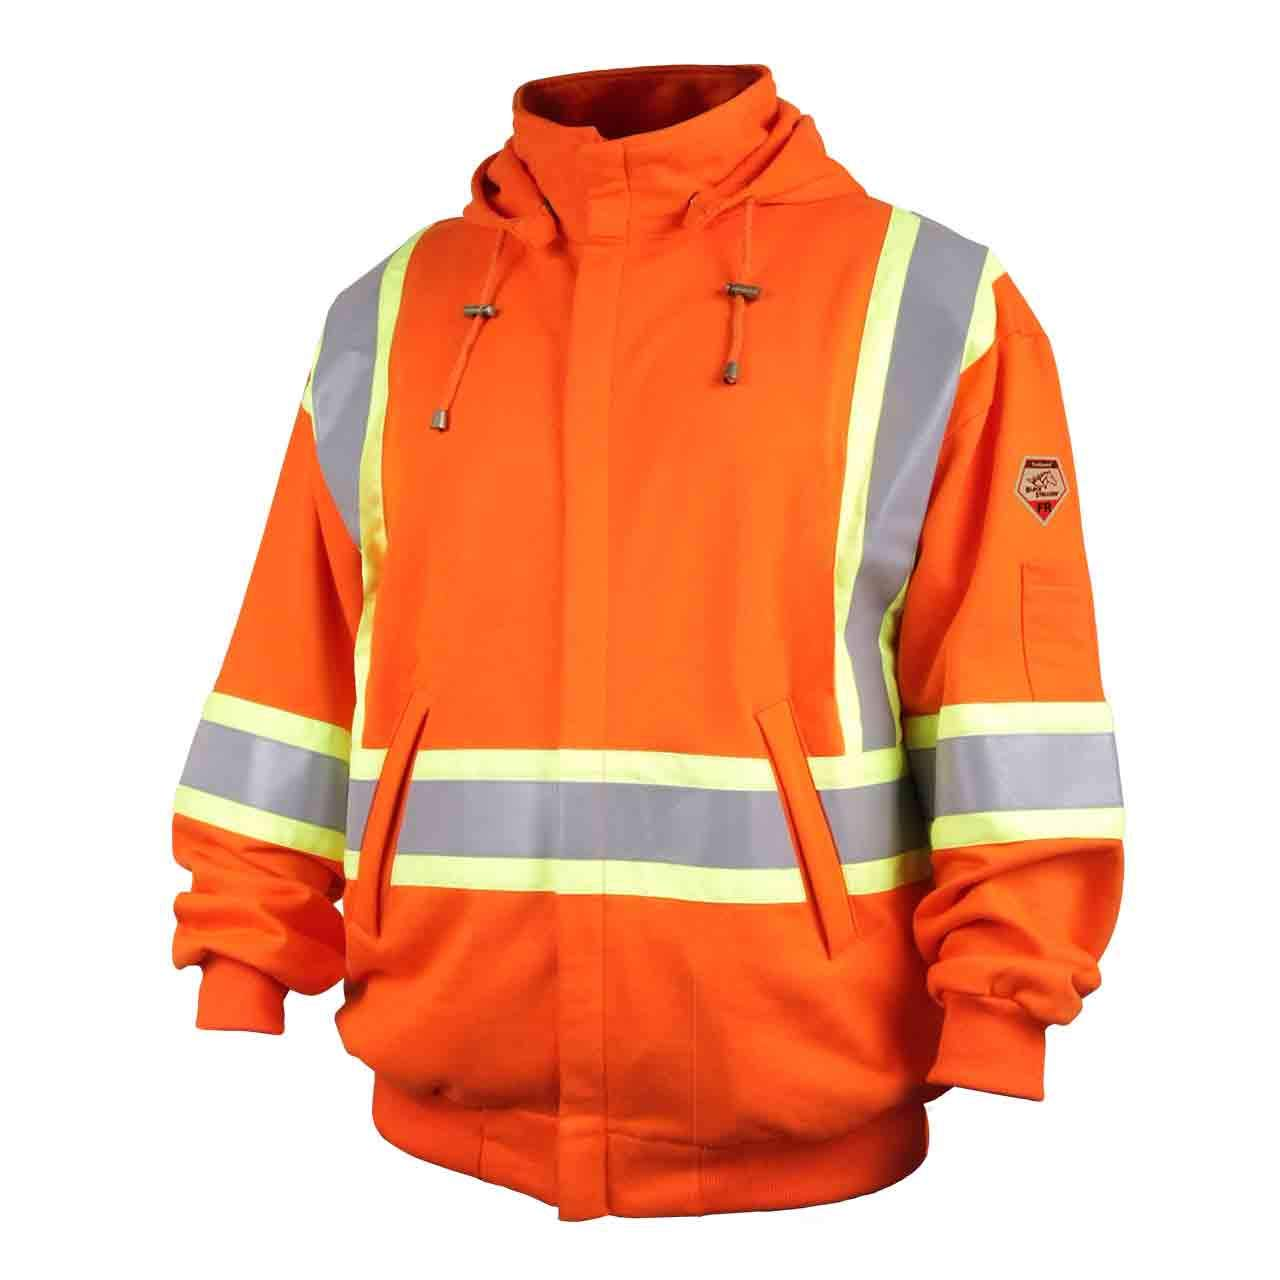 Revco/Black Stallion TruGuard™ 200 FR Cotton Hooded (Safety Orange) Sweatshirt, Reflectives 2XL by Black Stallion (Image #1)